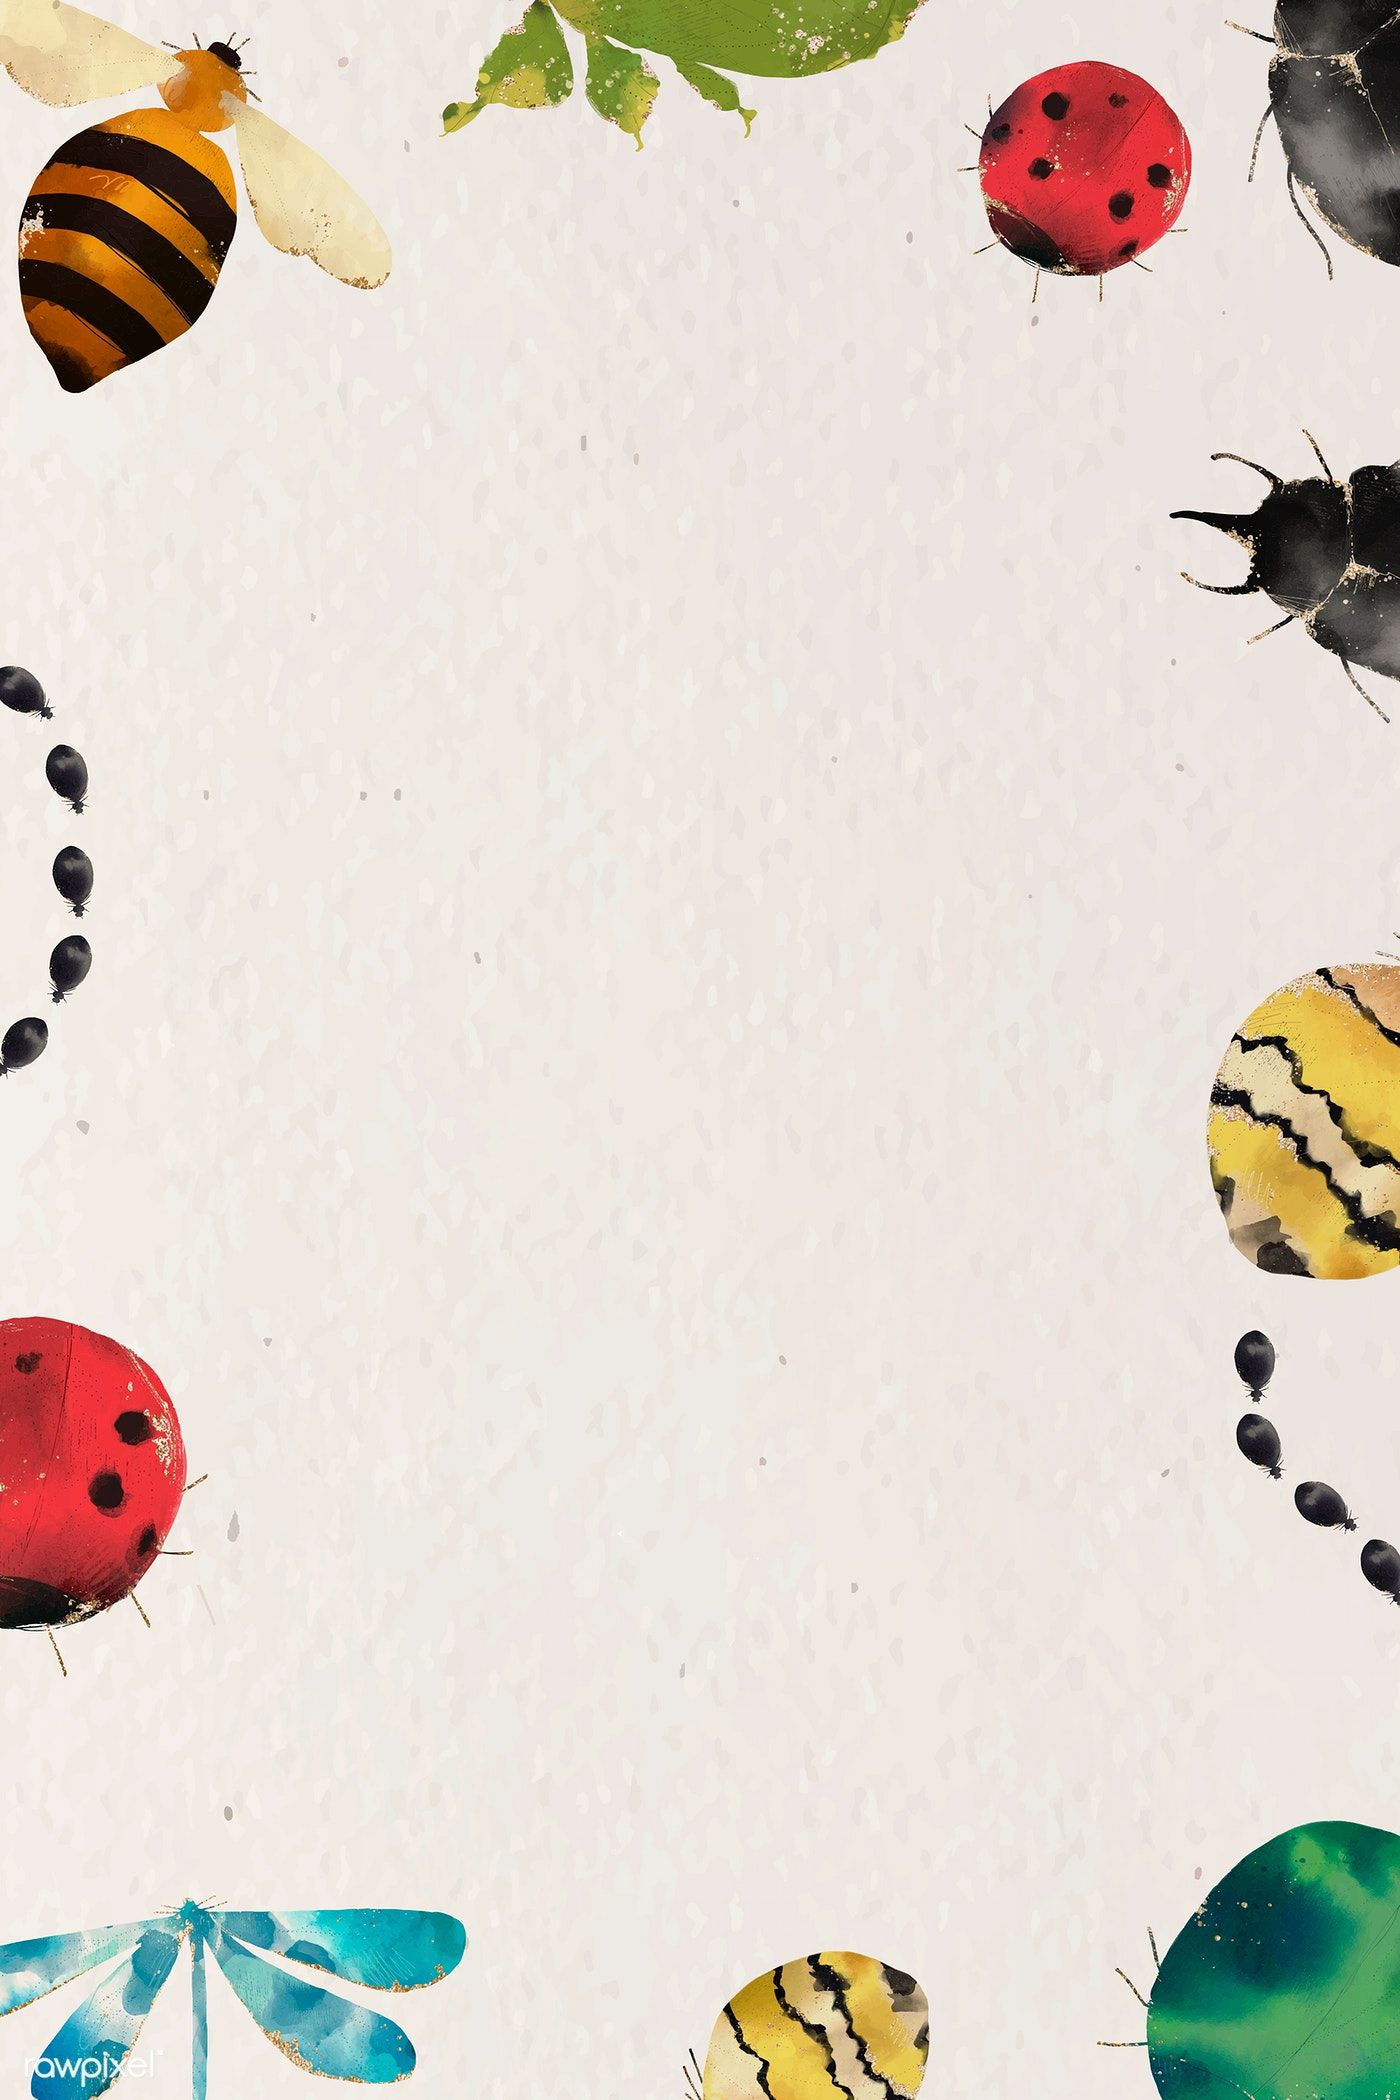 Download premium vector of Insects watercolor border